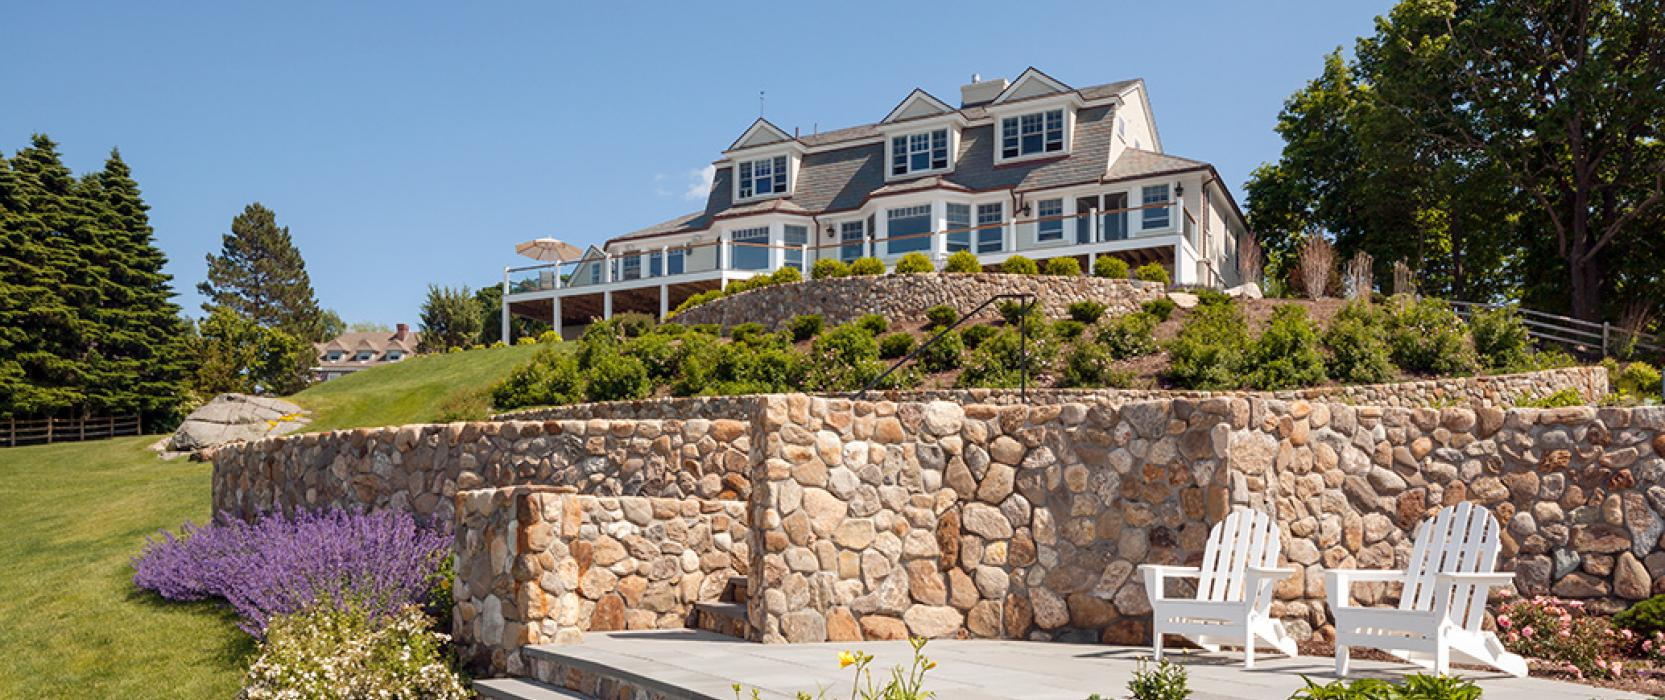 Seaside new england classic homes